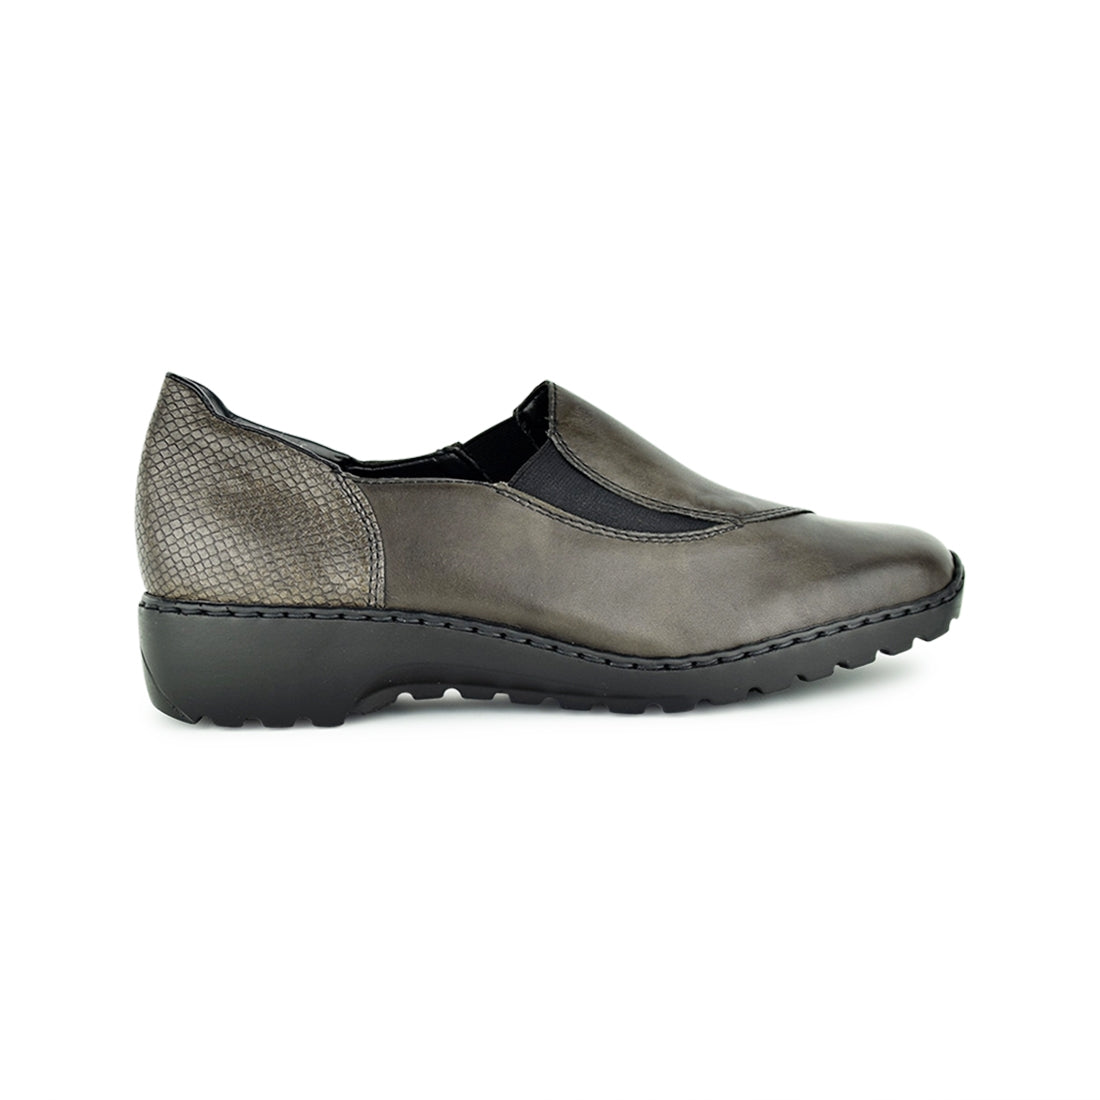 LINCH - Rieker Closed Shoe Grey